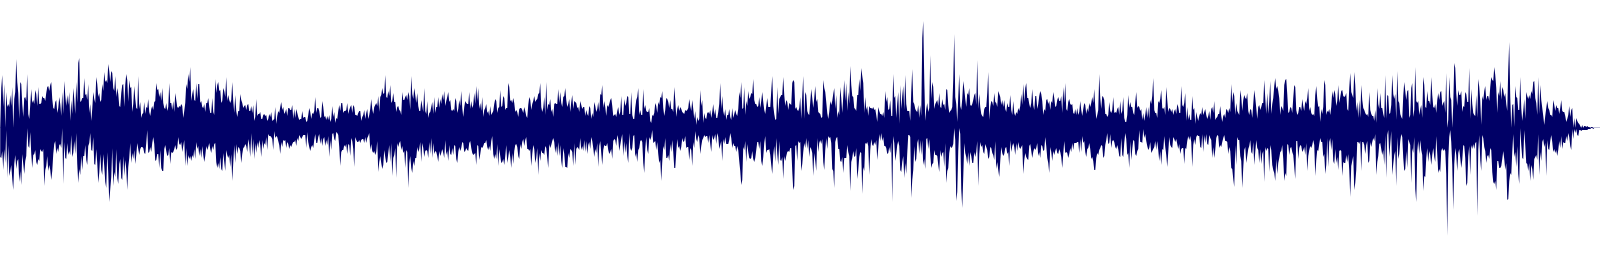 waveform of track #129069